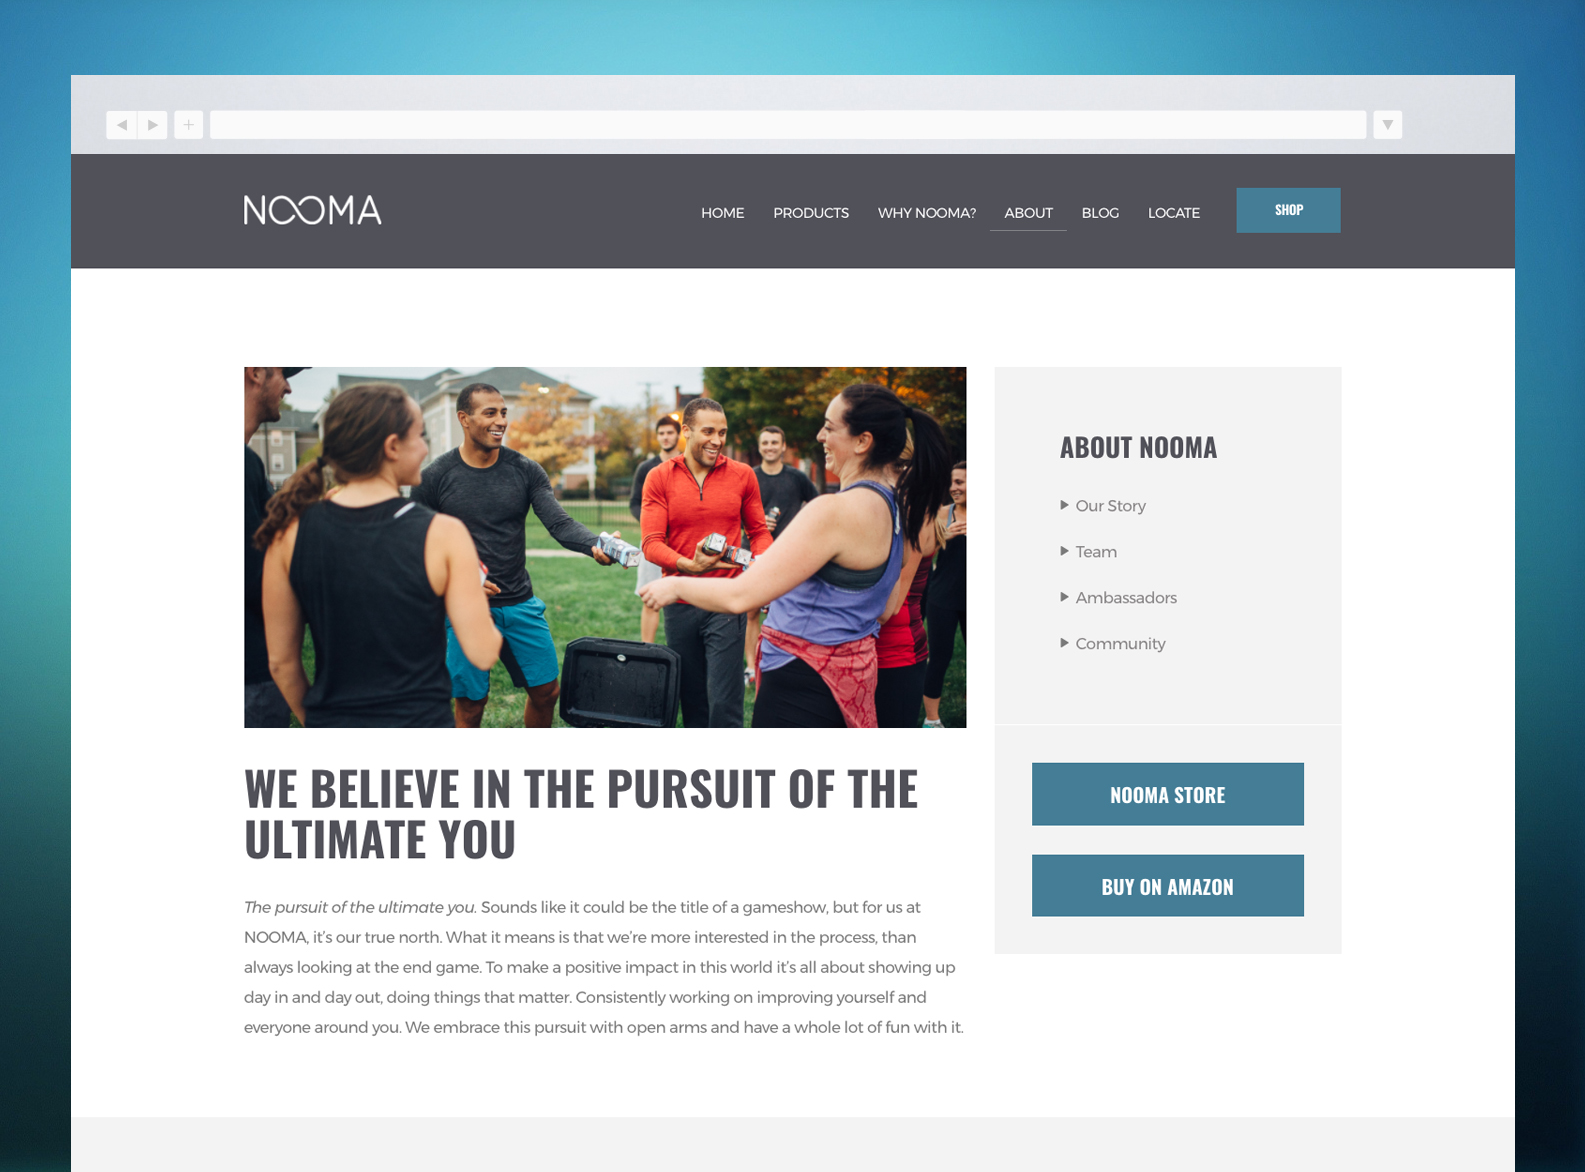 NOOMA Website Page